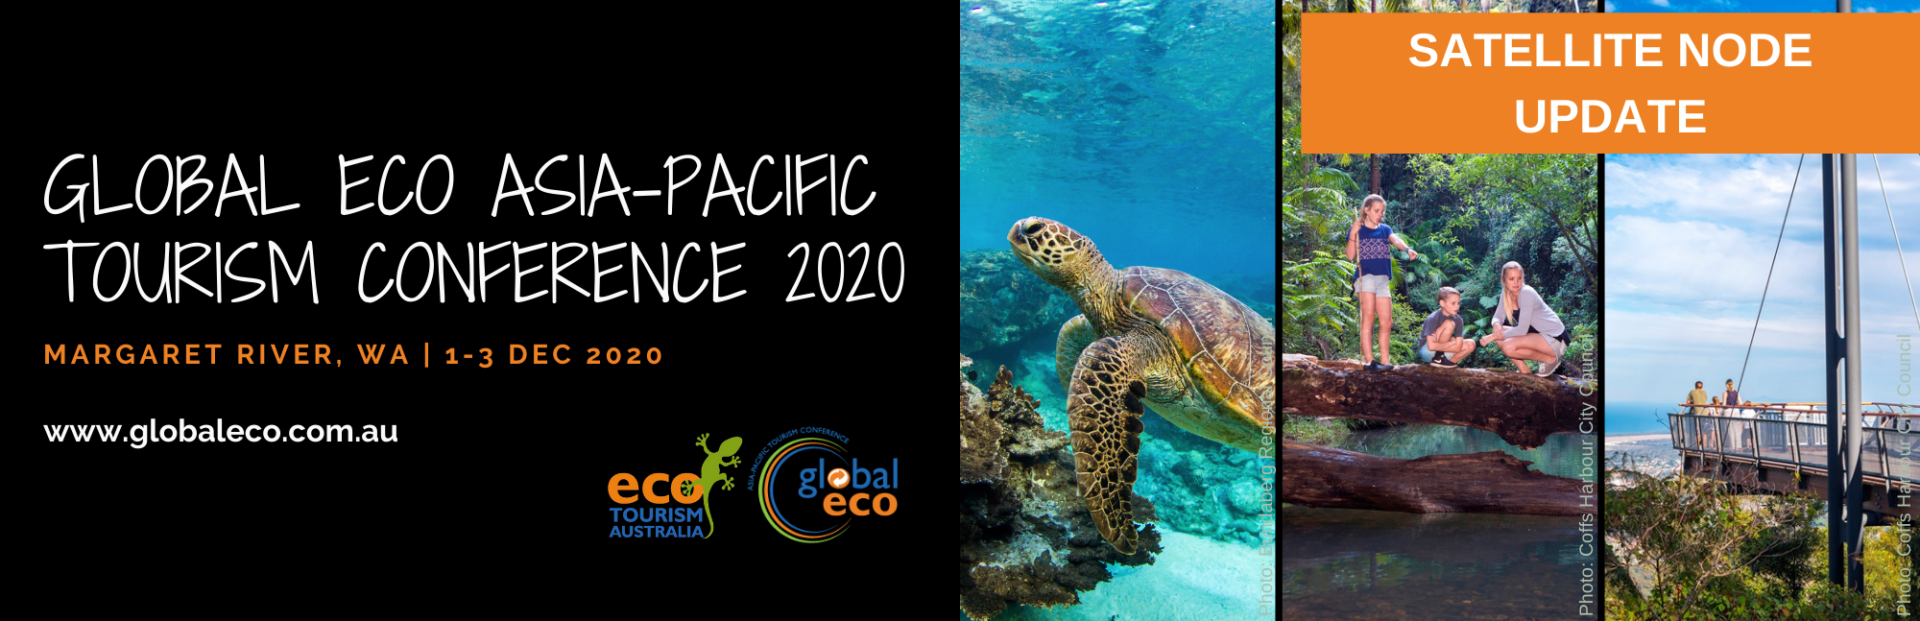 Two ECO Destinations Set To Live Stream the 2020 Global Eco Conference